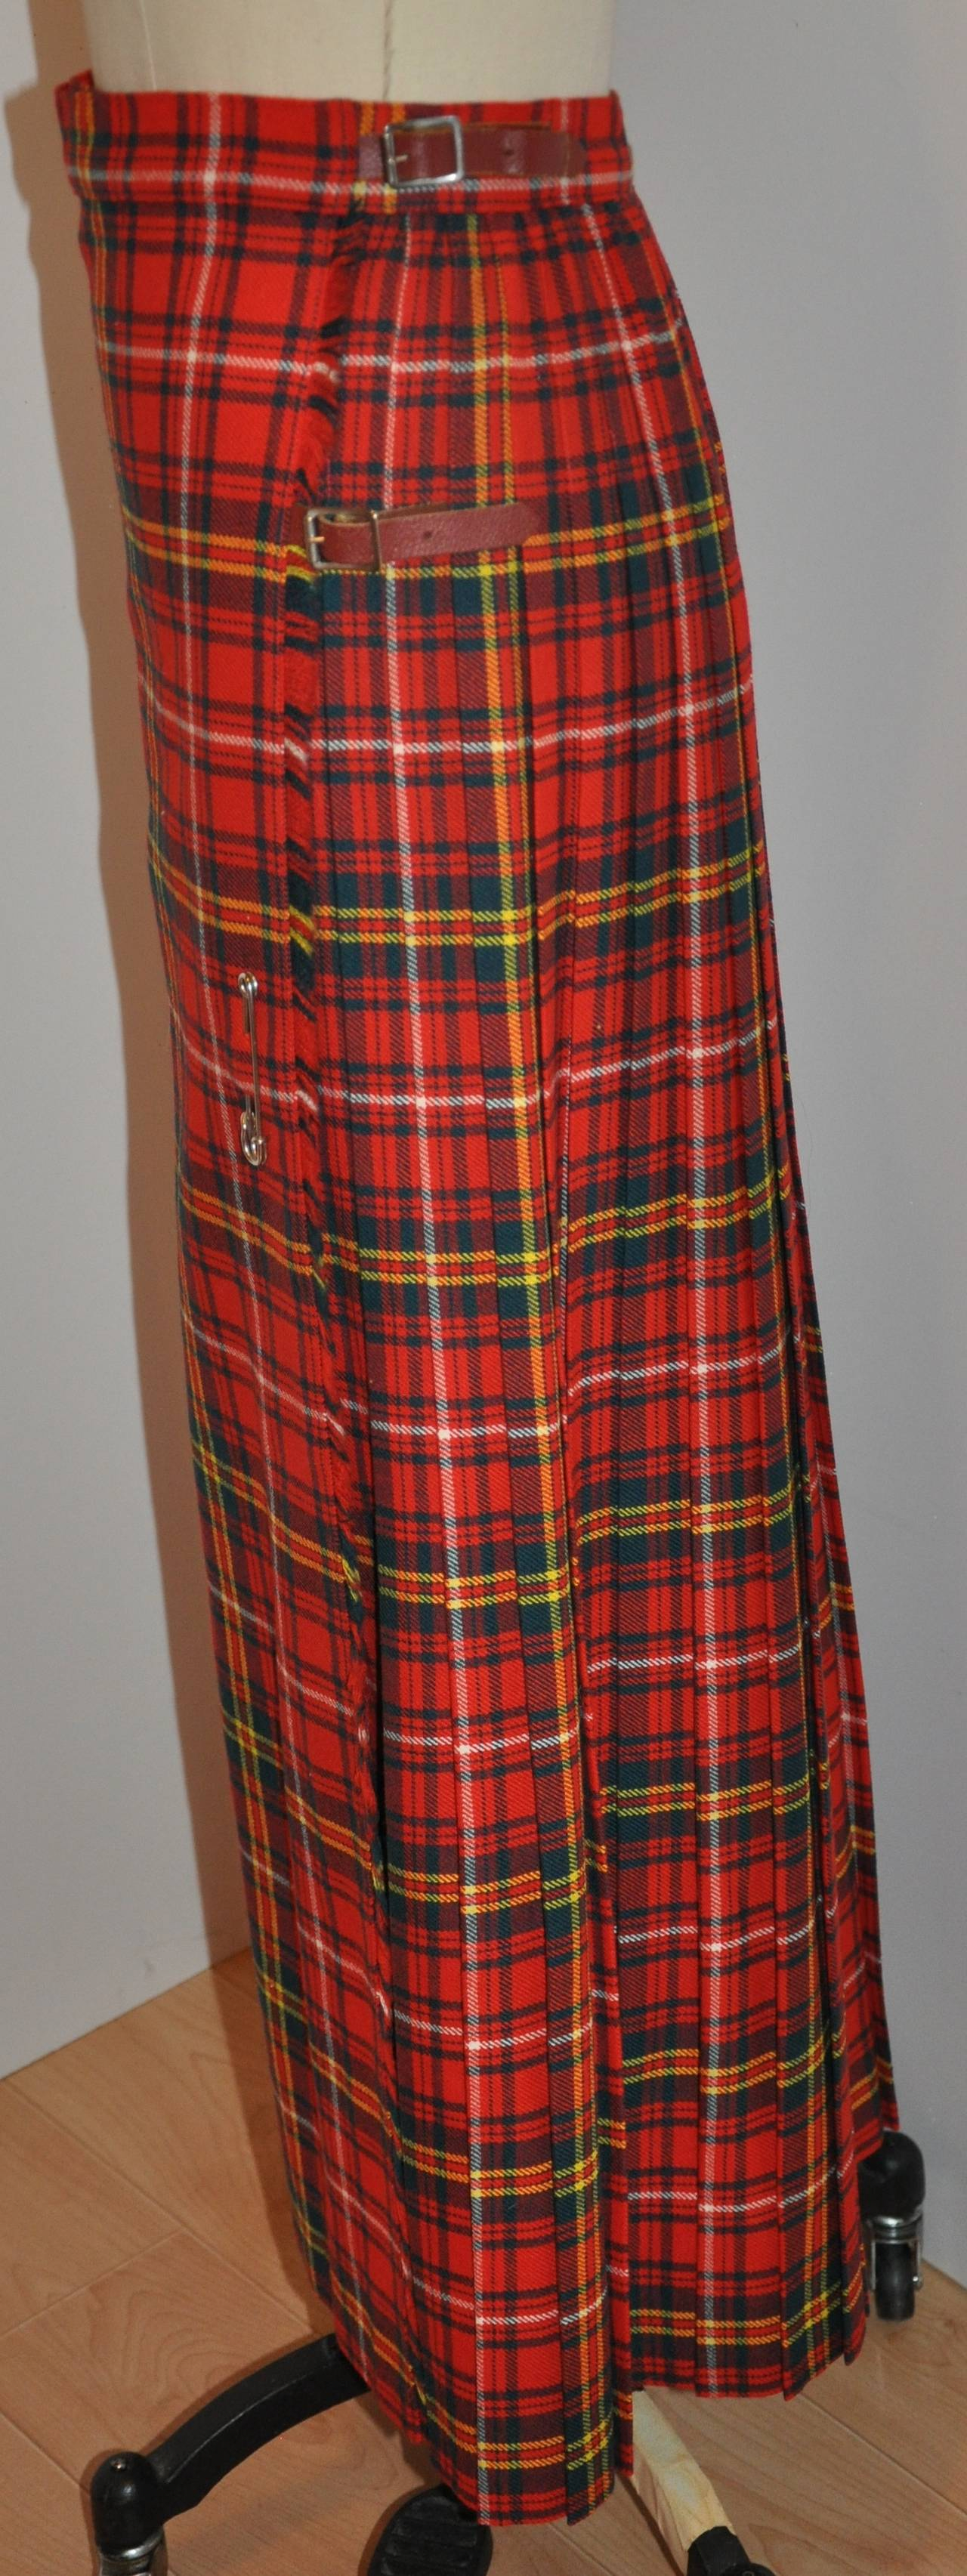 L.S. Ayres & Co Bold Red Plaid Maxi Wrap Skirt 3